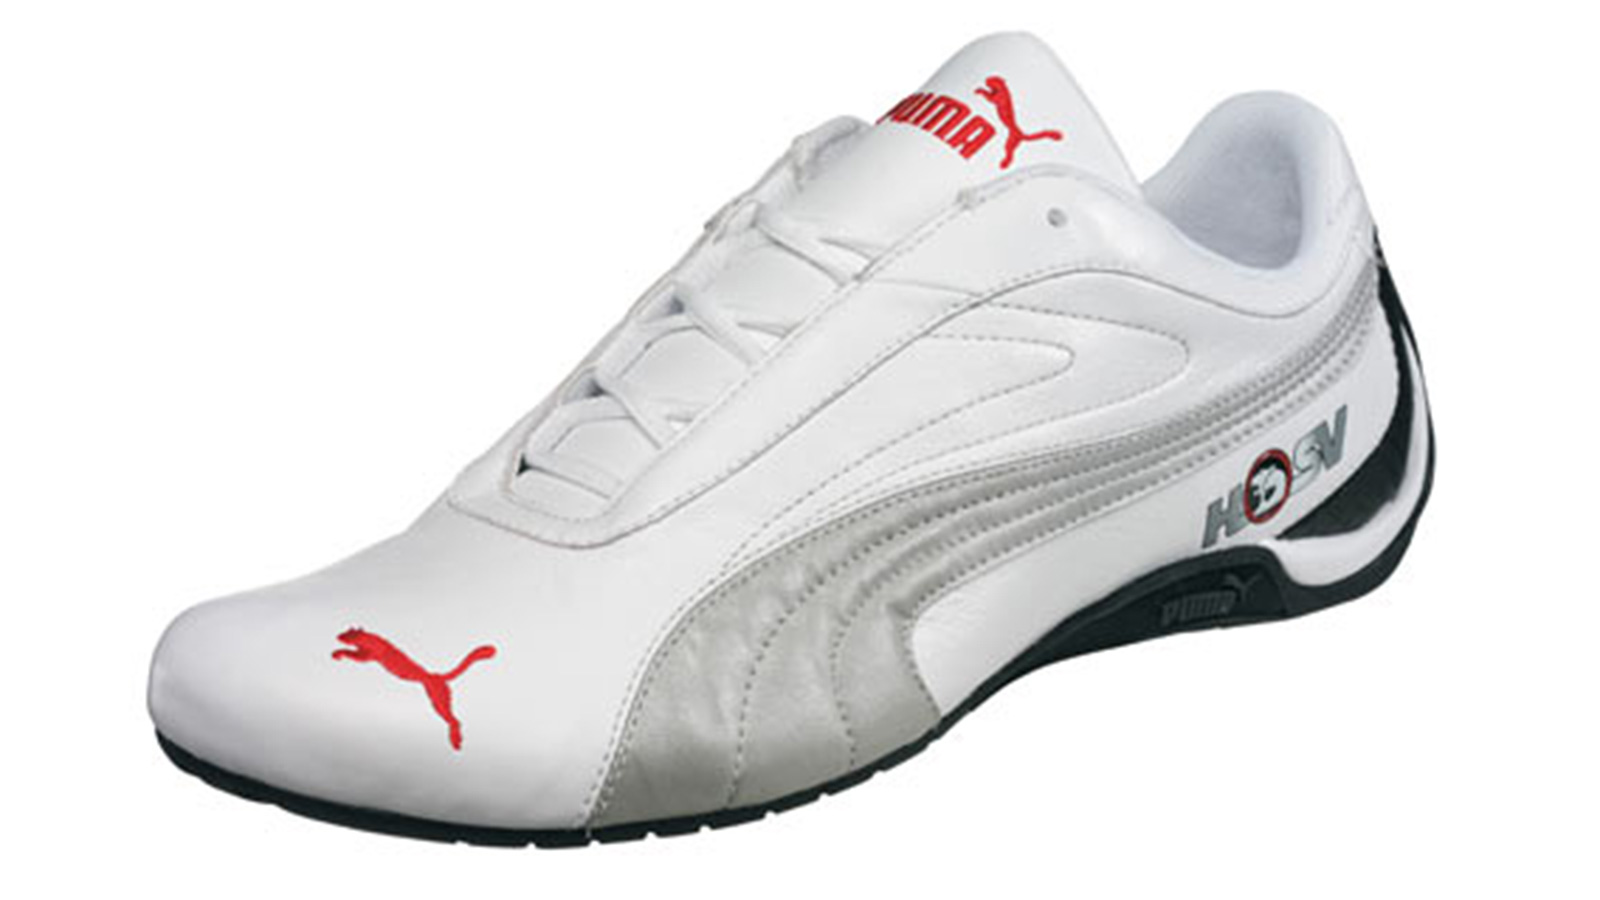 HSV and Puma launch new shoe in time for Bathurst.